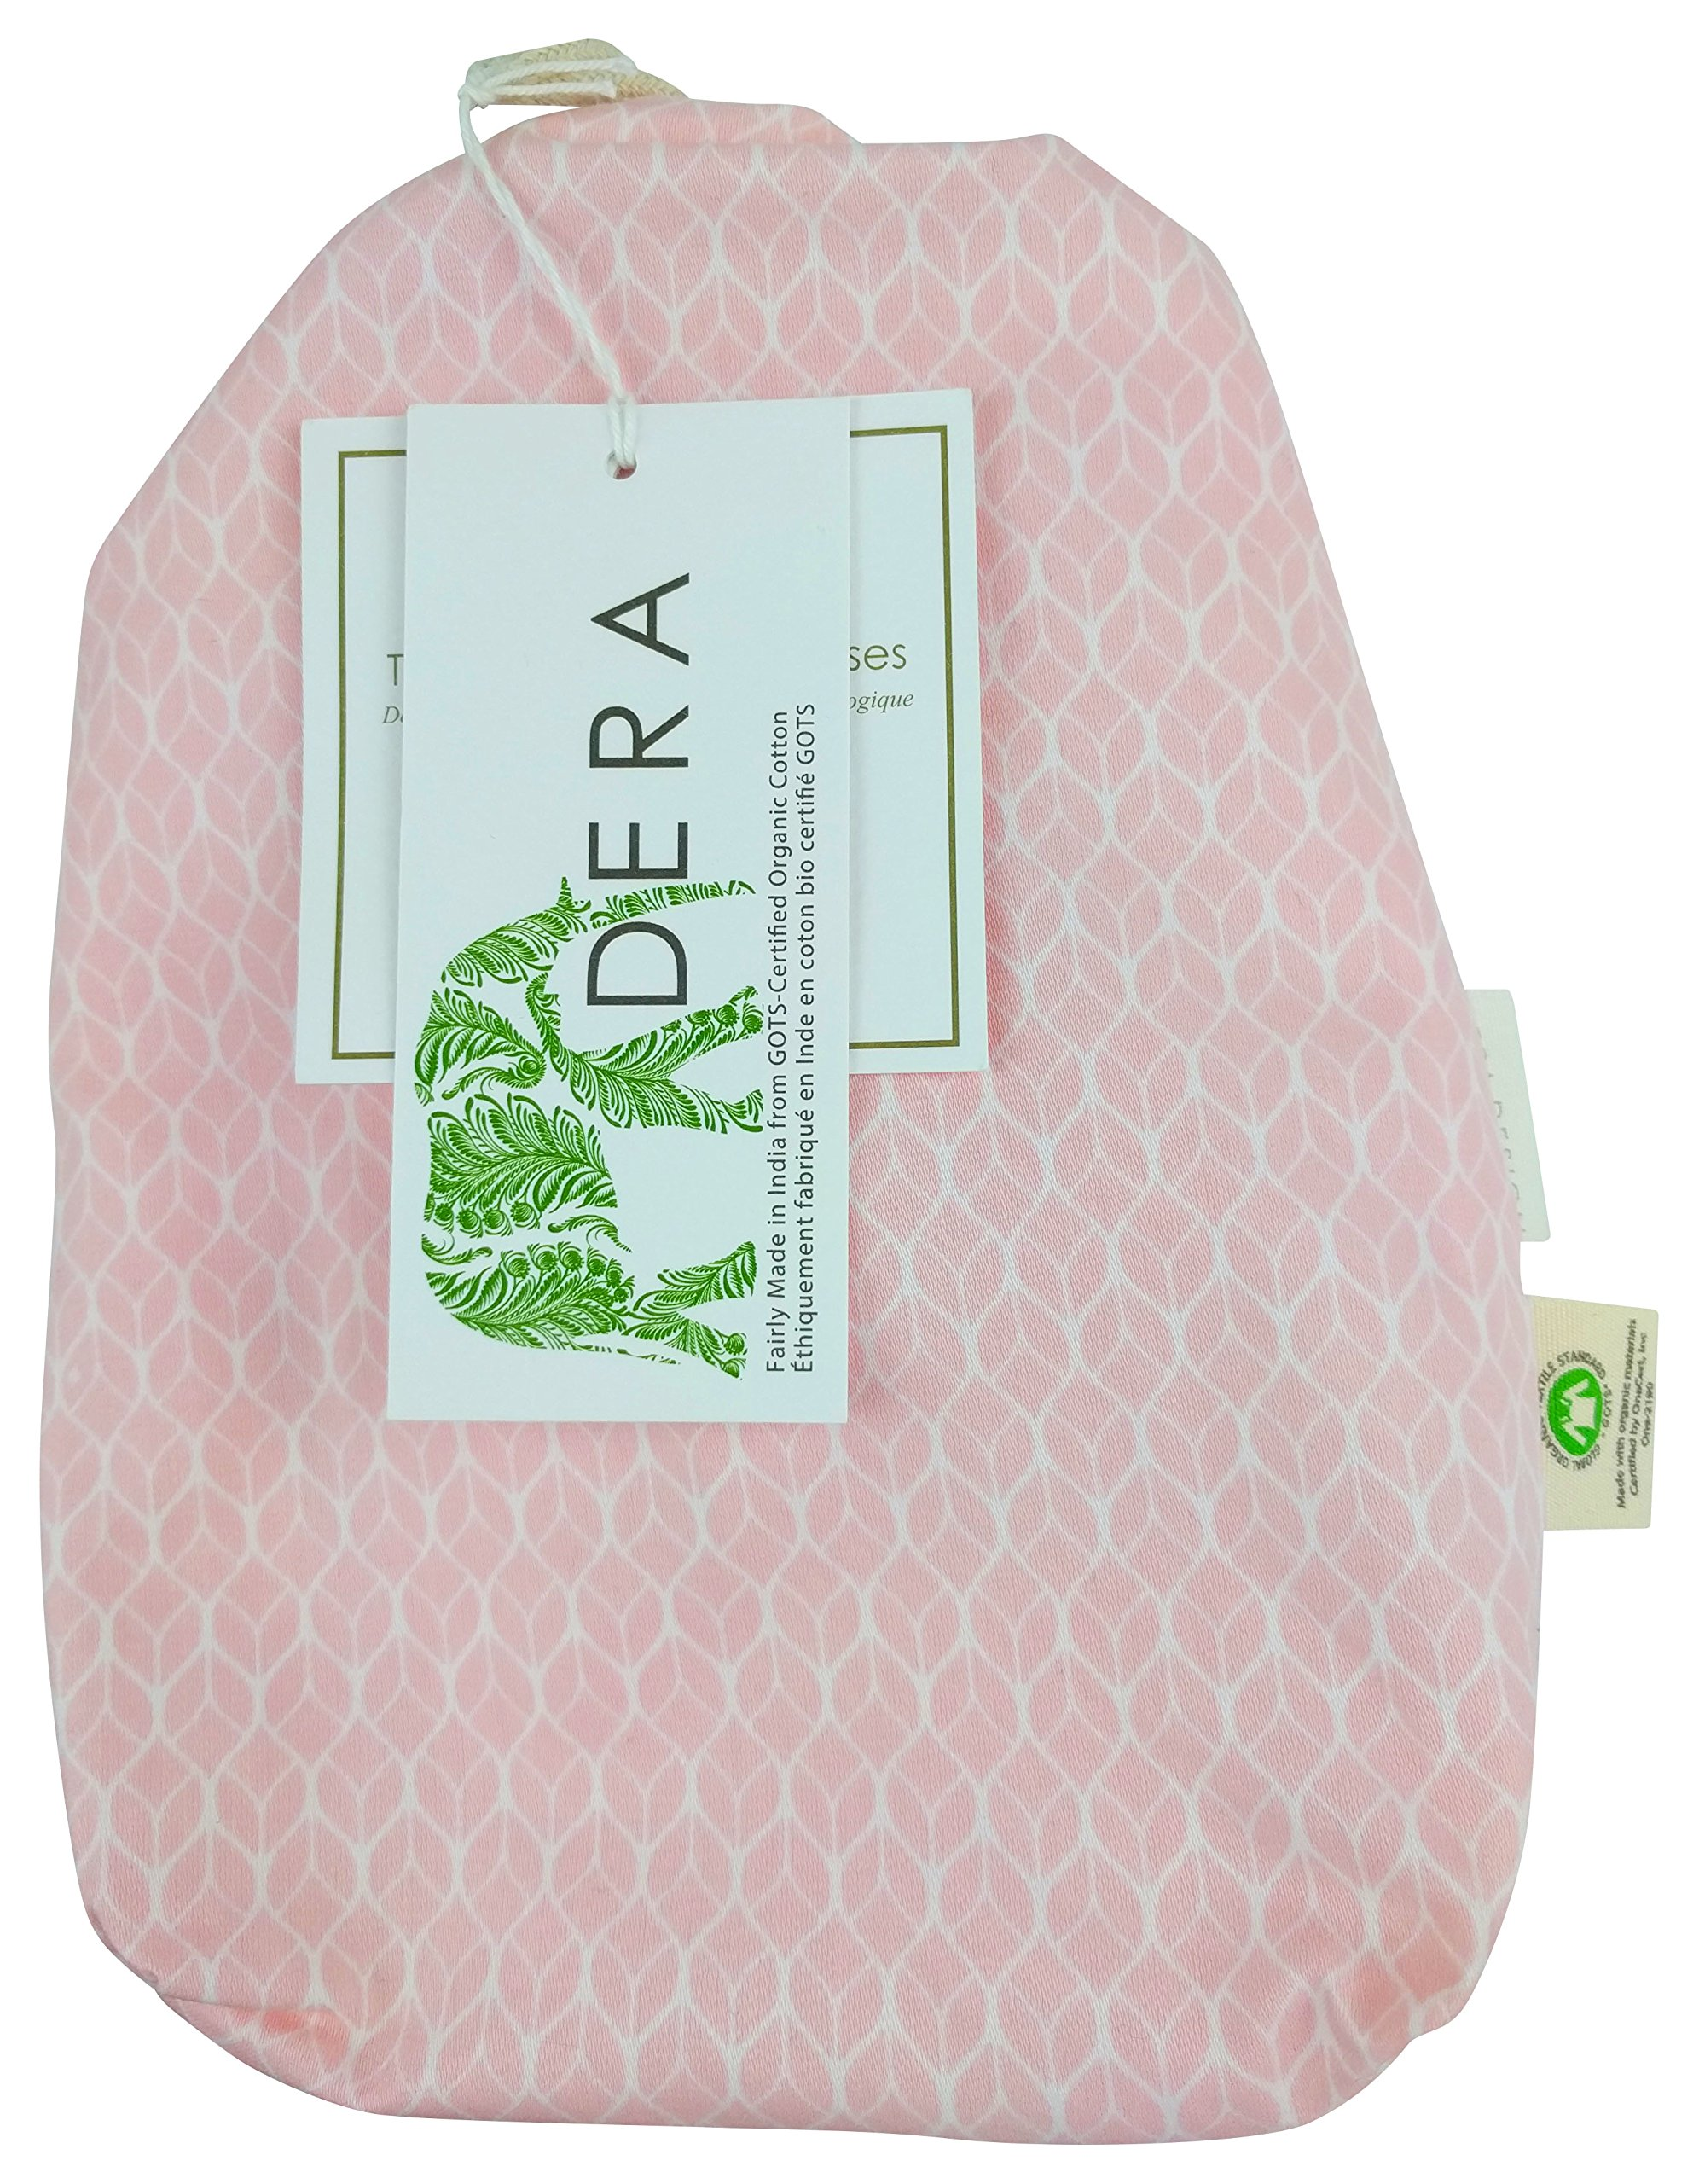 """Organic Cotton Portable Playard Fitted Crib Sheet, 27"""" x 39"""" x 5"""" to Fit Pack 'n Play for Babies & Toddlers, Geo Leaf Print (Rose)"""